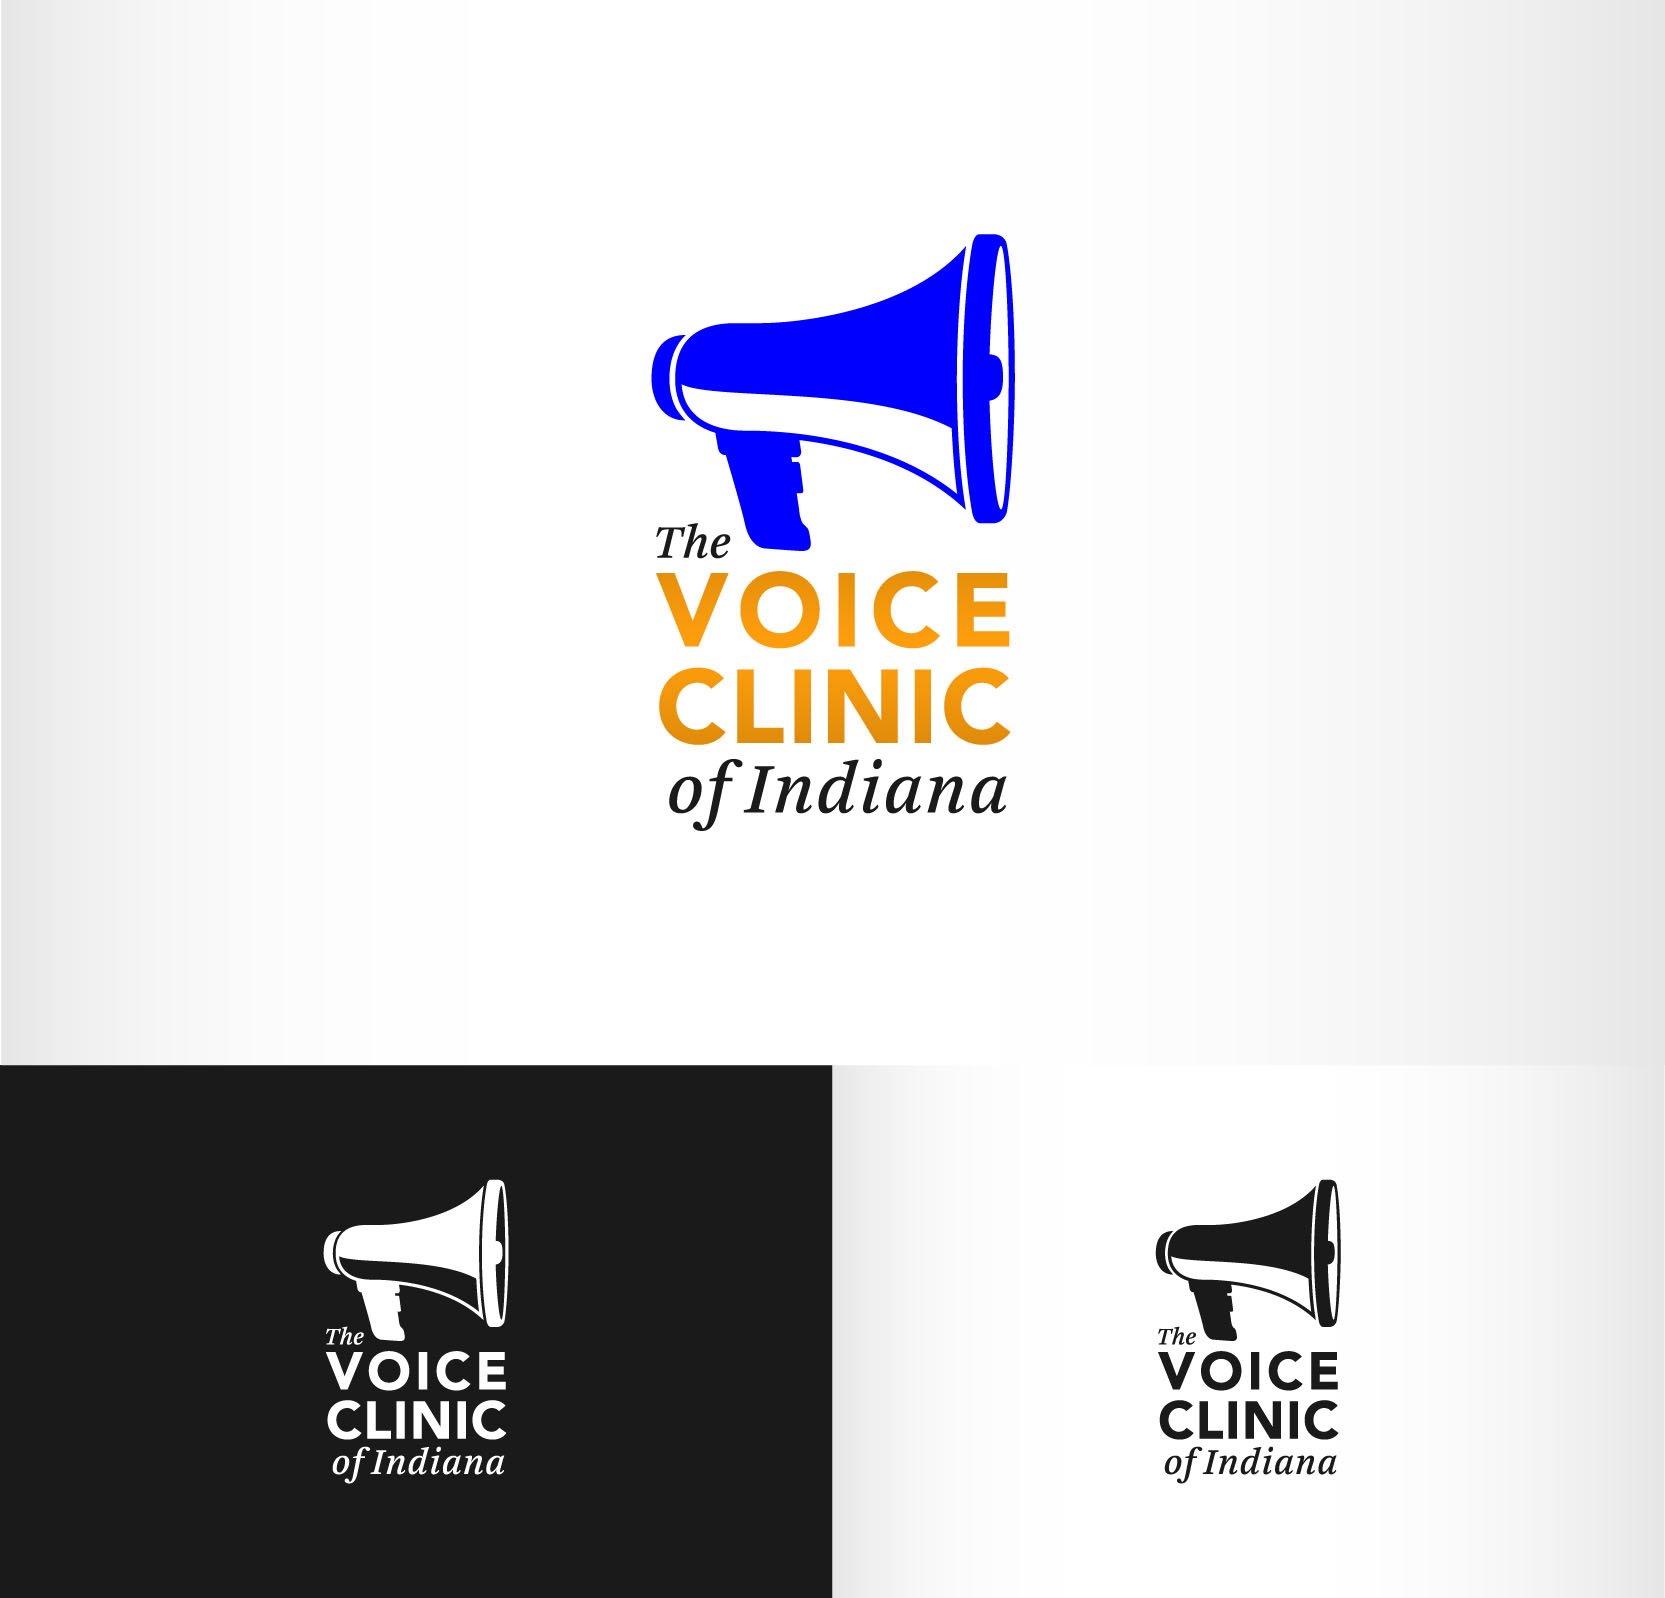 Logo Design by Andrés González - Entry No. 36 in the Logo Design Contest Logo Design for The Voice Clinic of Indiana.